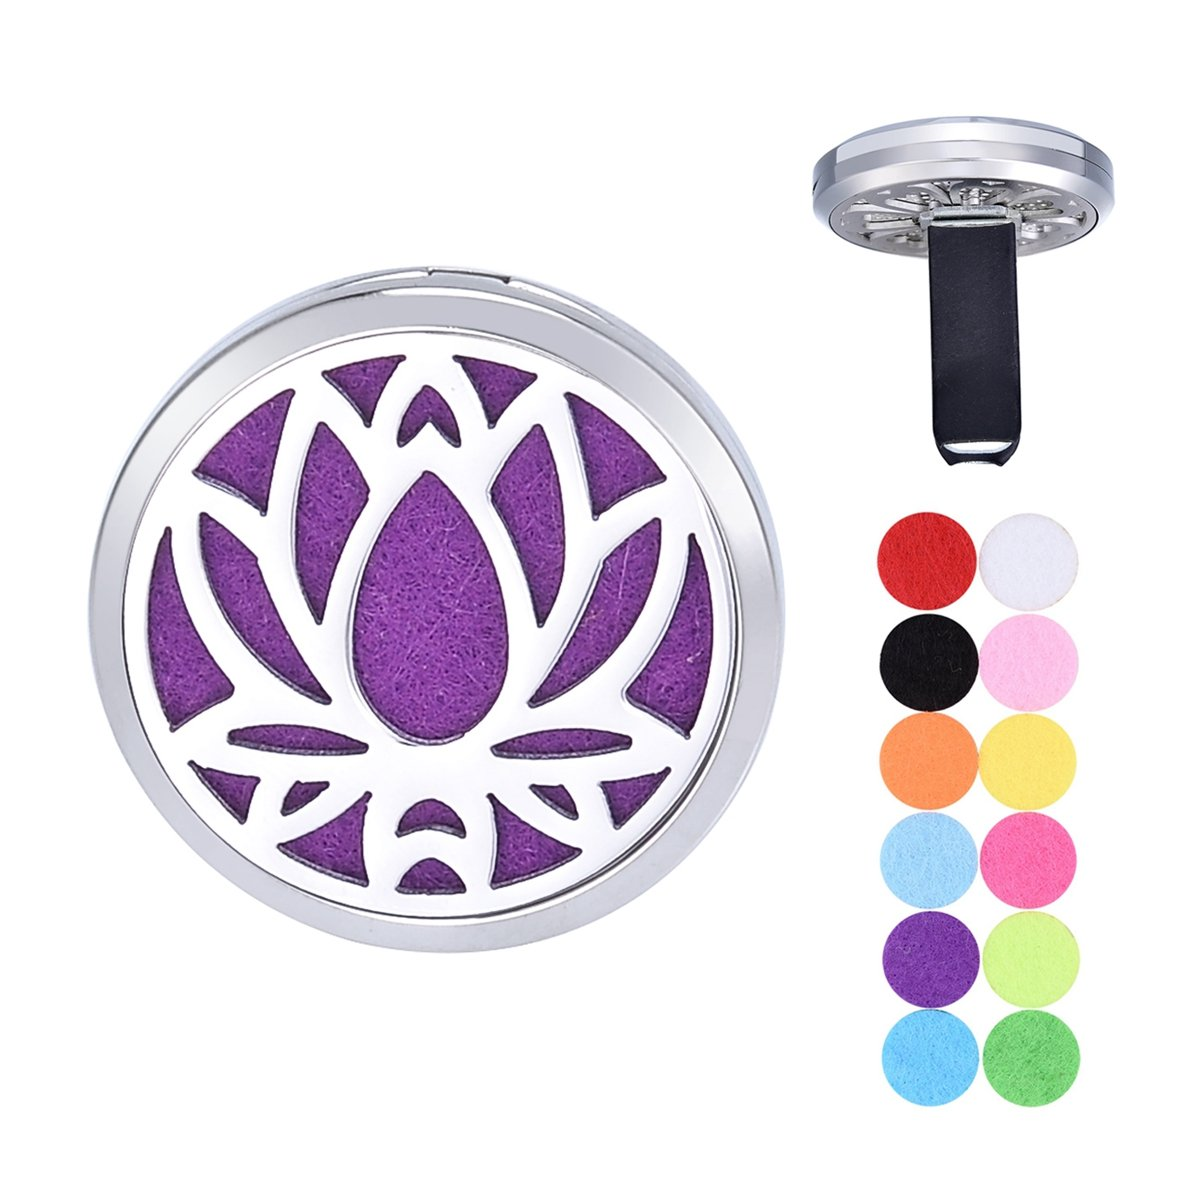 Chrysanthemum Car Air Freshener Aromatherapy Essential Oil Diffuser Vent Clip Stainless Steel Locket 12 Felt Pads Supreme glory